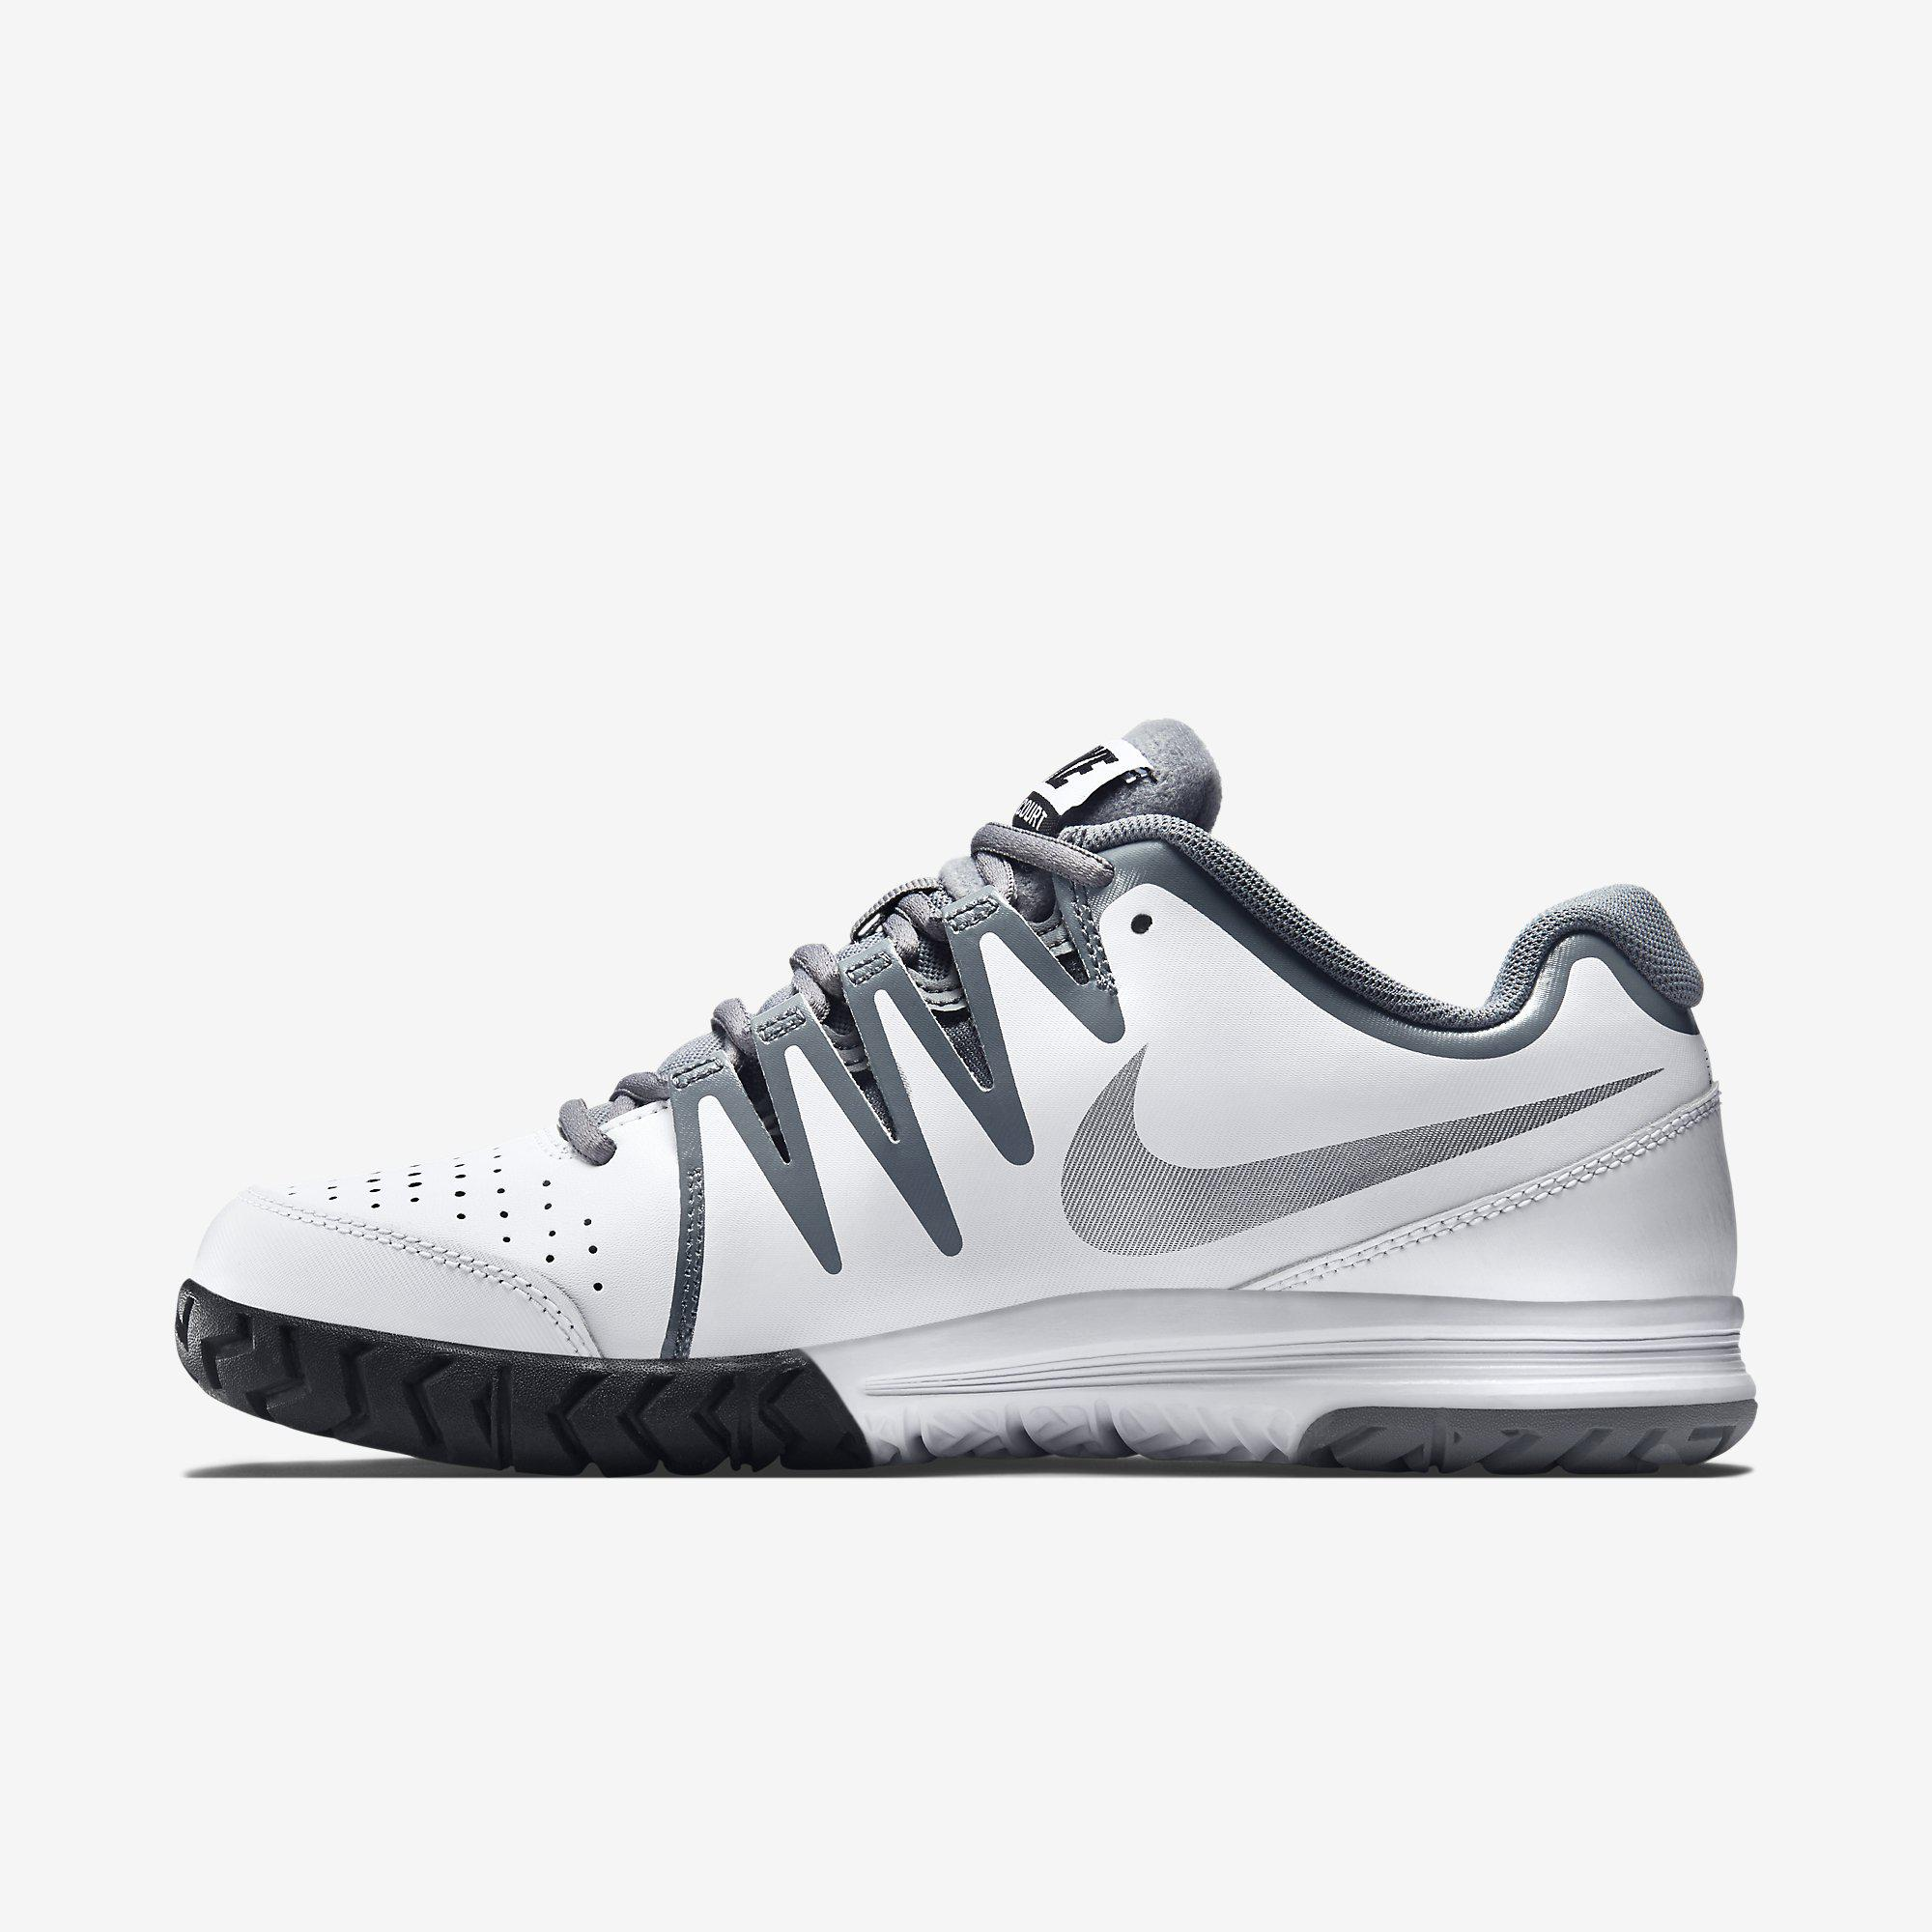 f39f5320c Nike Womens Vapor Court Tennis Shoes - White - Tennisnuts.com